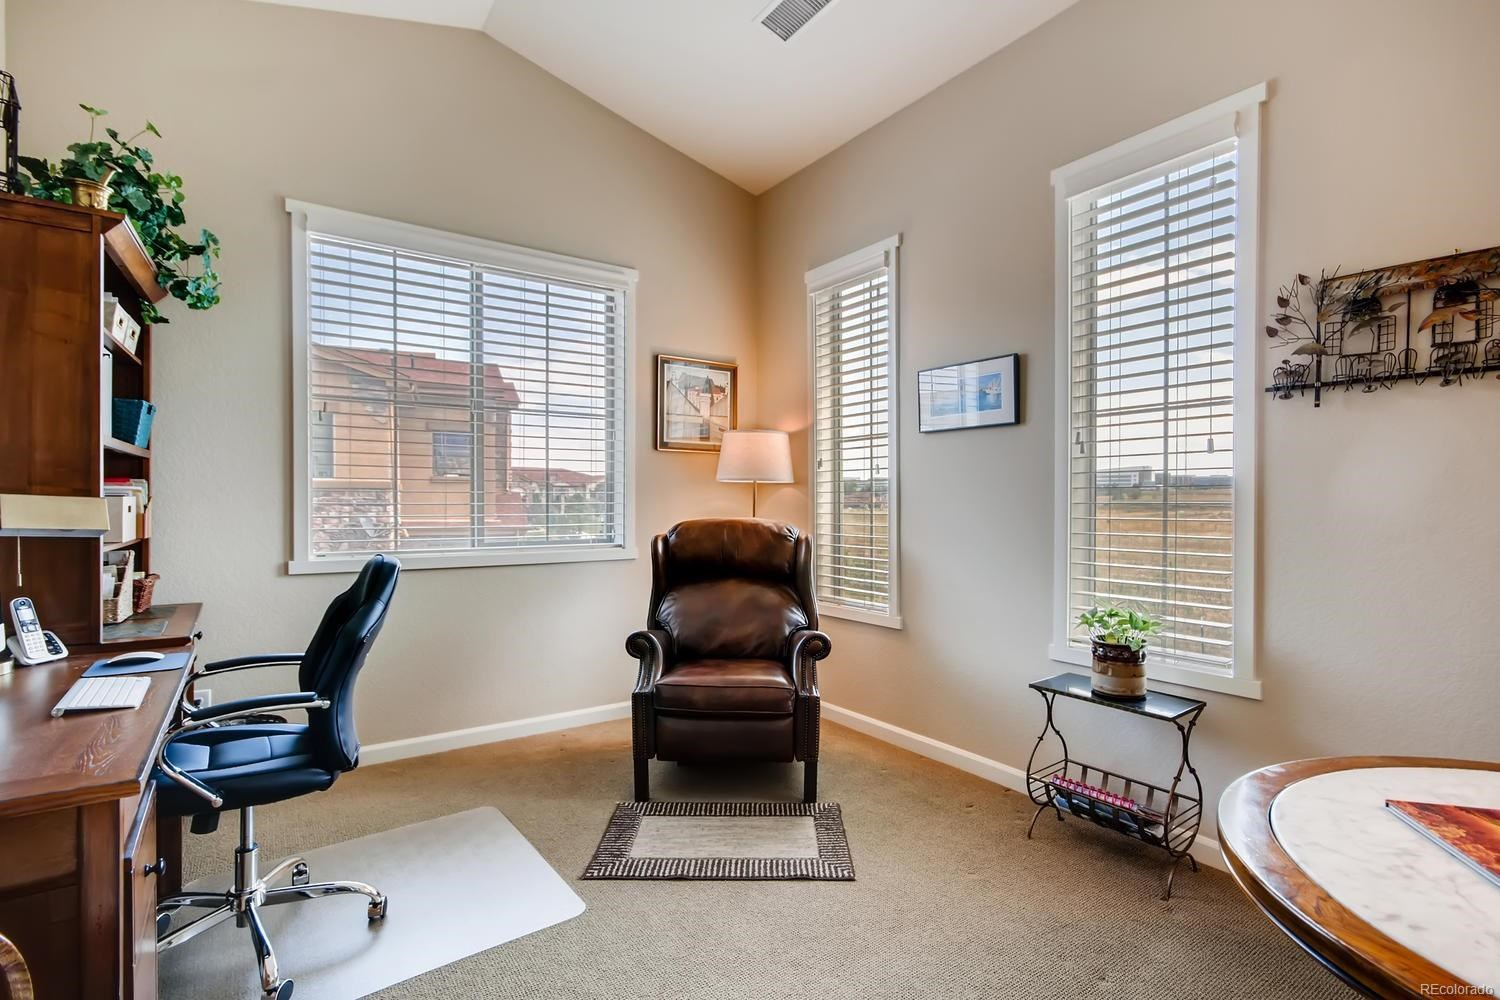 MLS# 8538078 - 18 - 2320 Primo Road #201, Highlands Ranch, CO 80129